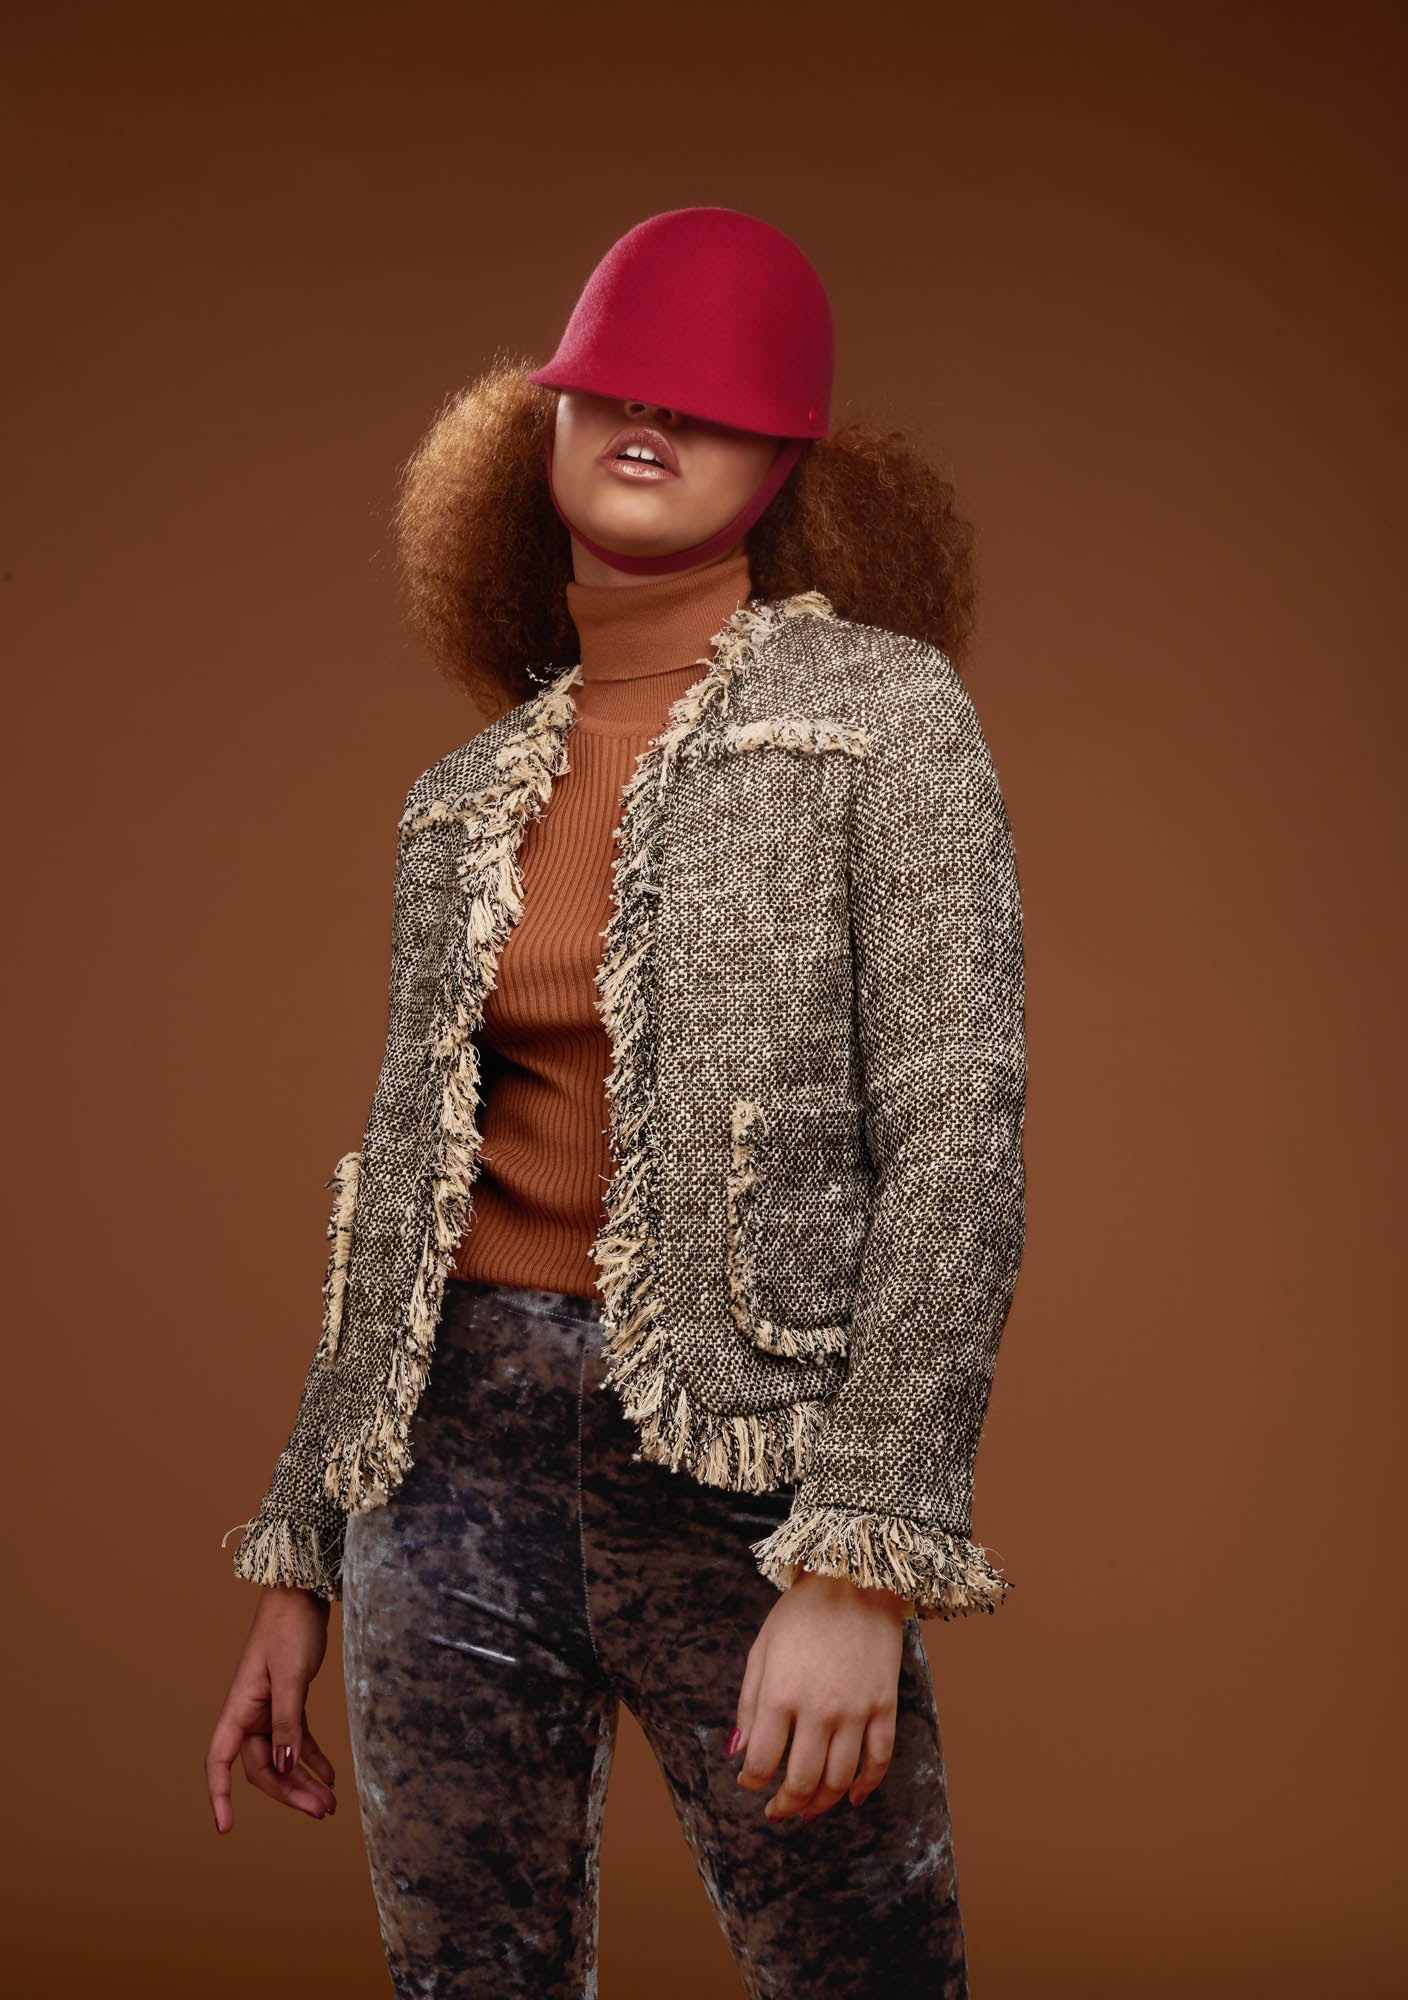 The riding cap Chief matches the fashion outfit in this fashion editorial